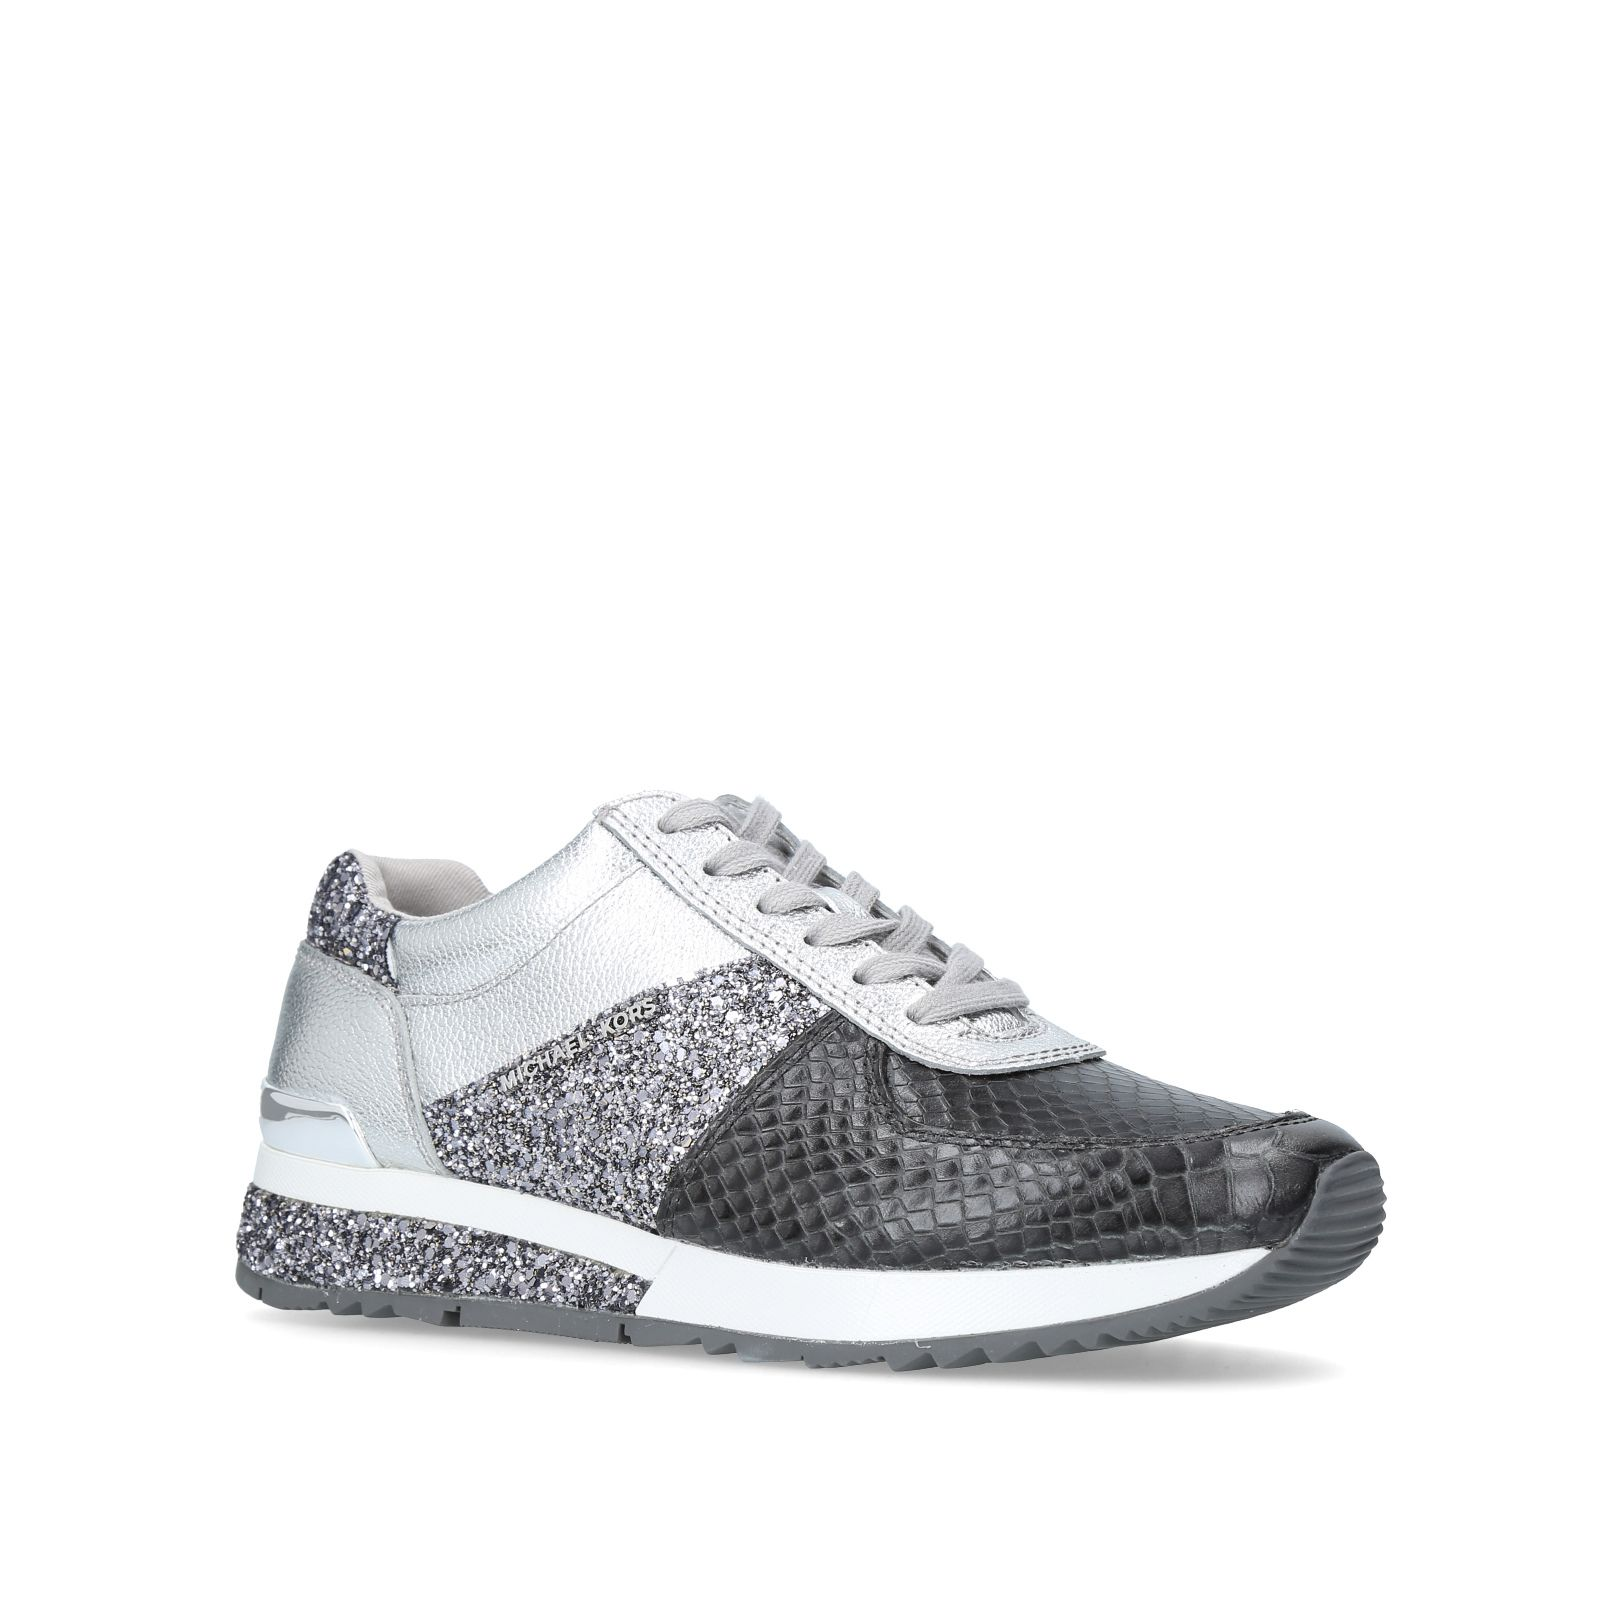 Michael Kors Allie Wrap Trainer Trainers, Charcoal